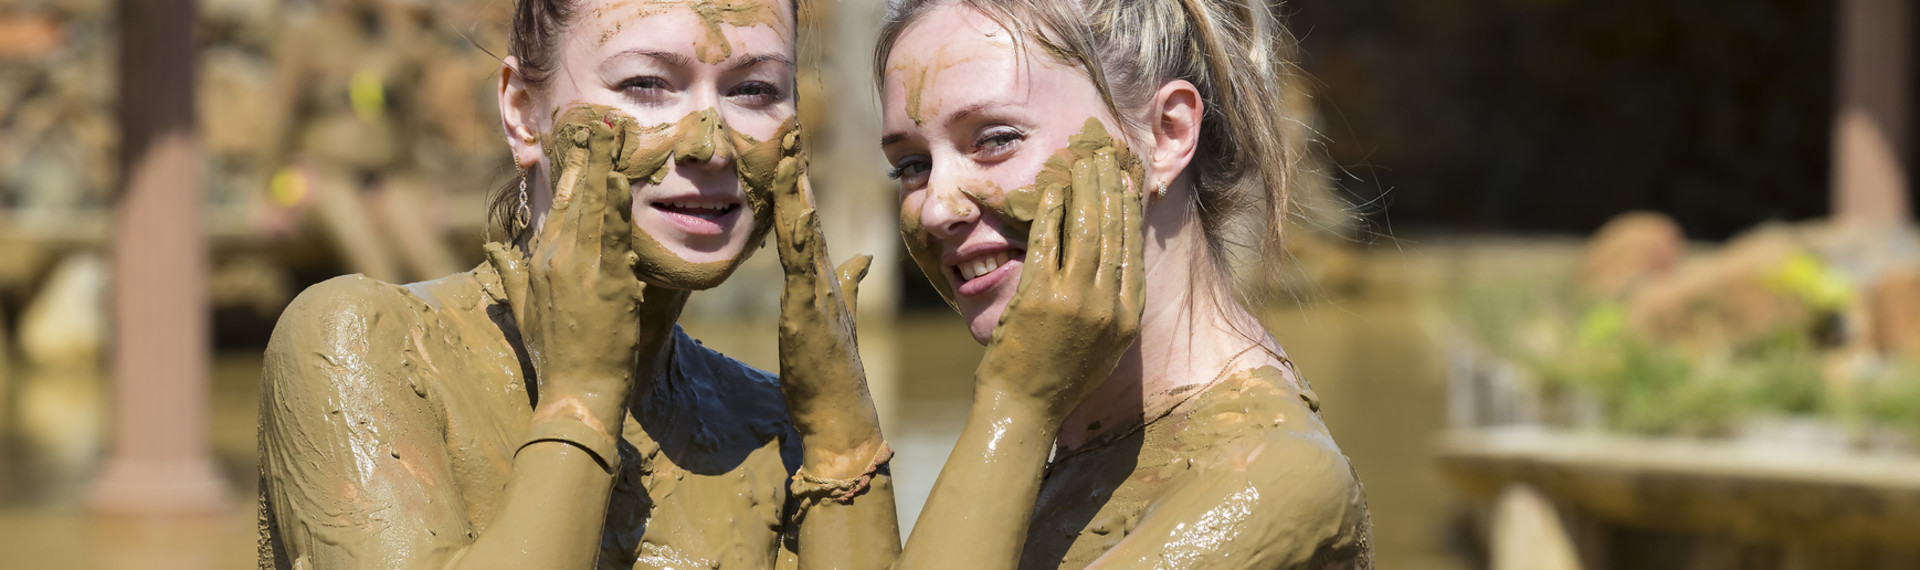 Jelly Wrestling in Prague | Pissup Tours